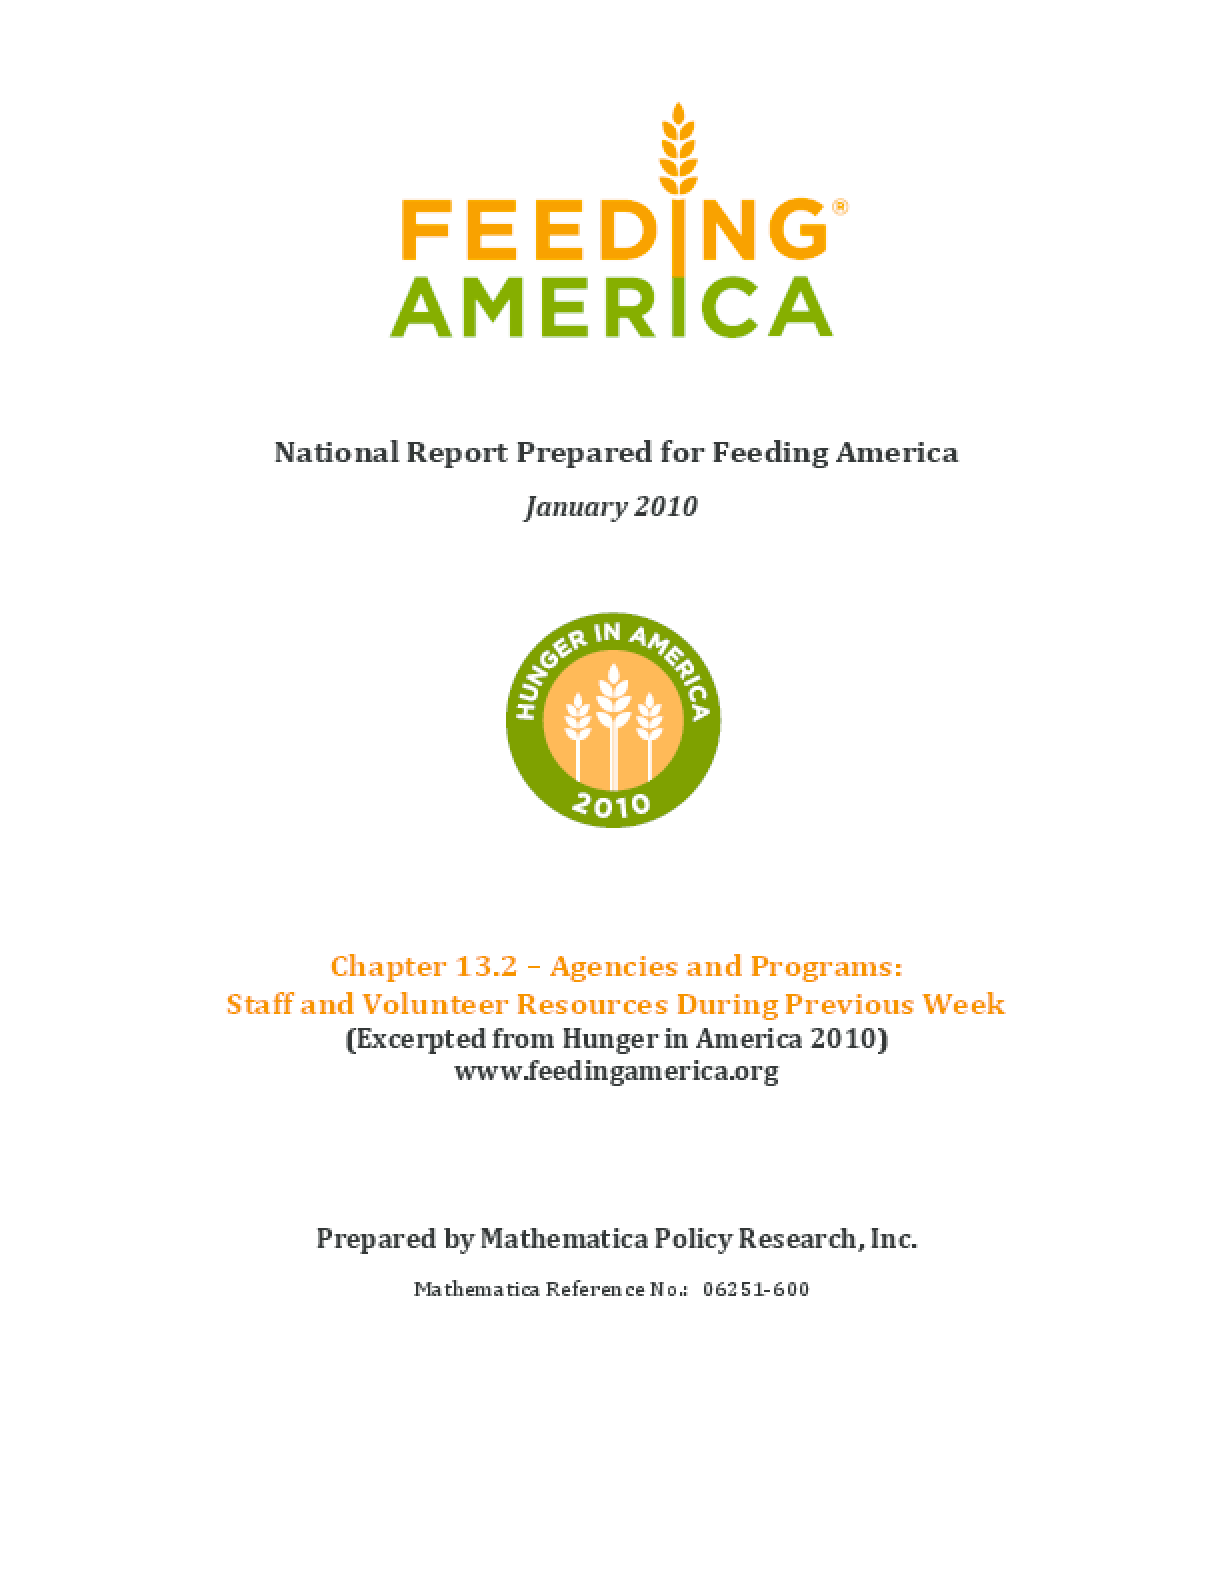 Feeding America Agencies and Food Programs: Staff and Volunteer Resources During Previous Week